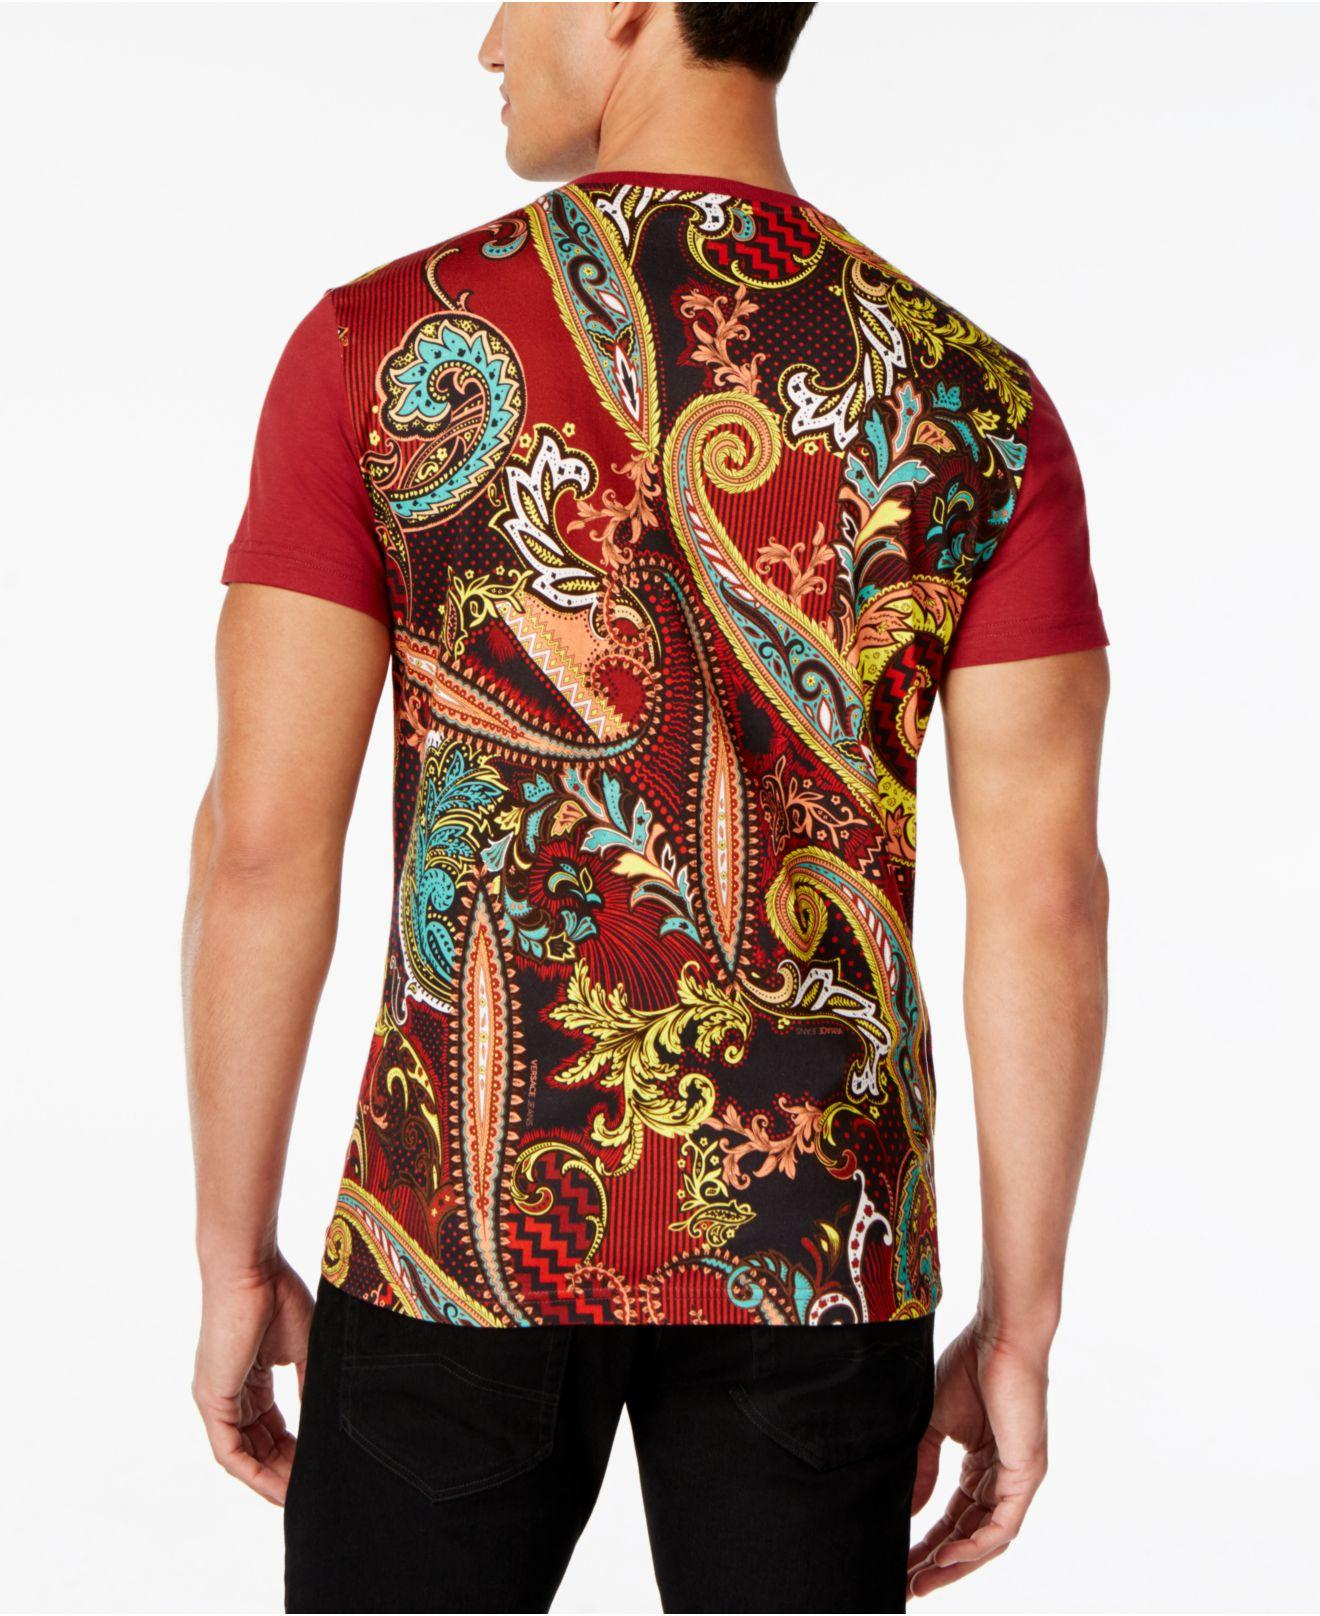 lyst versace jeans men 39 s graphic print t shirt in red for men. Black Bedroom Furniture Sets. Home Design Ideas